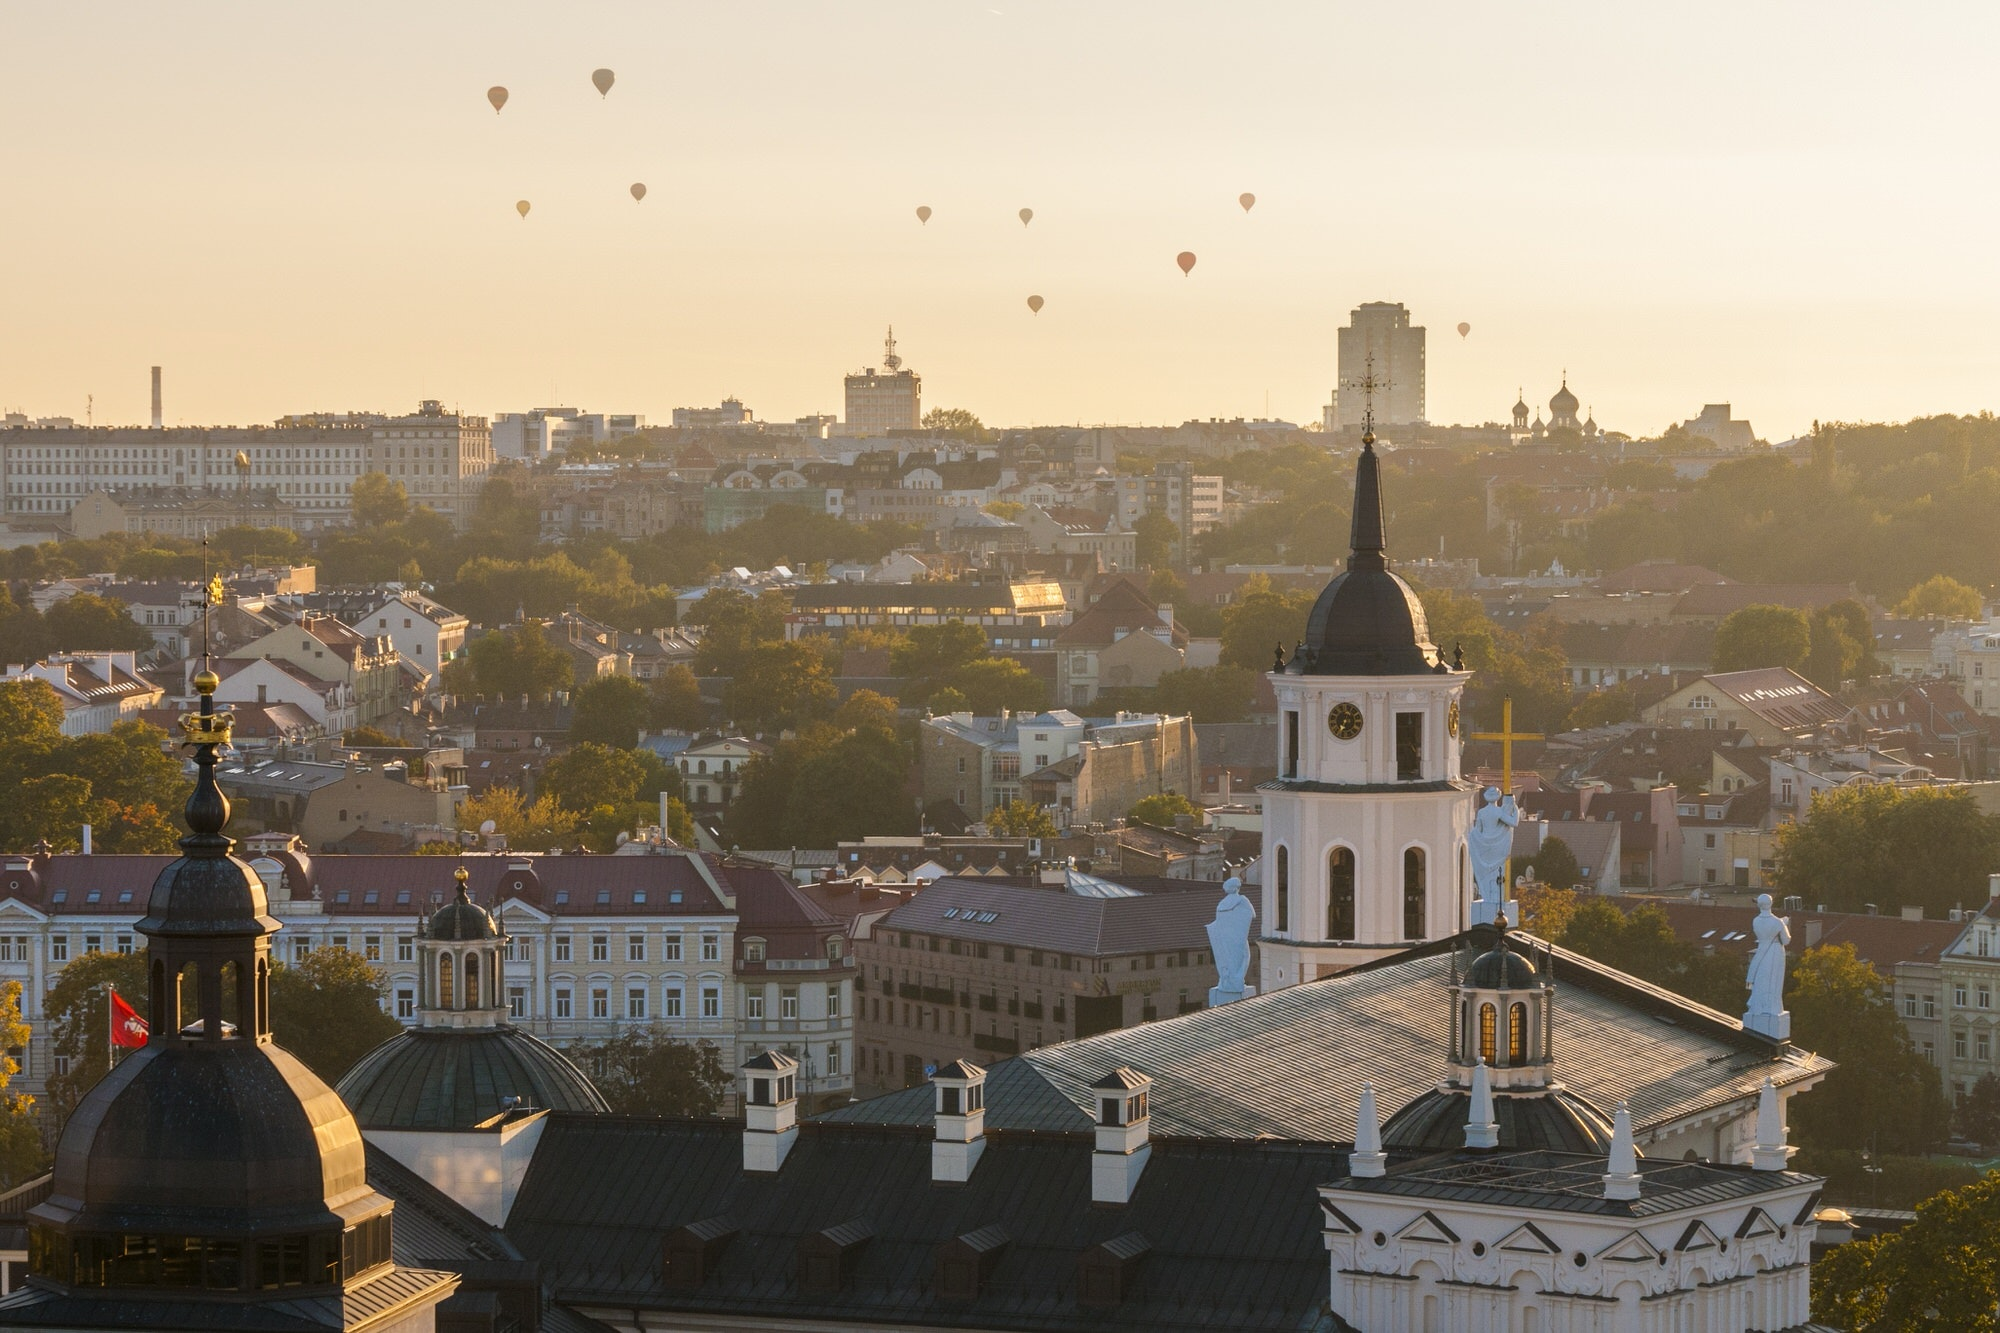 Hot-air balloons flying over city of Vilnius at sunset